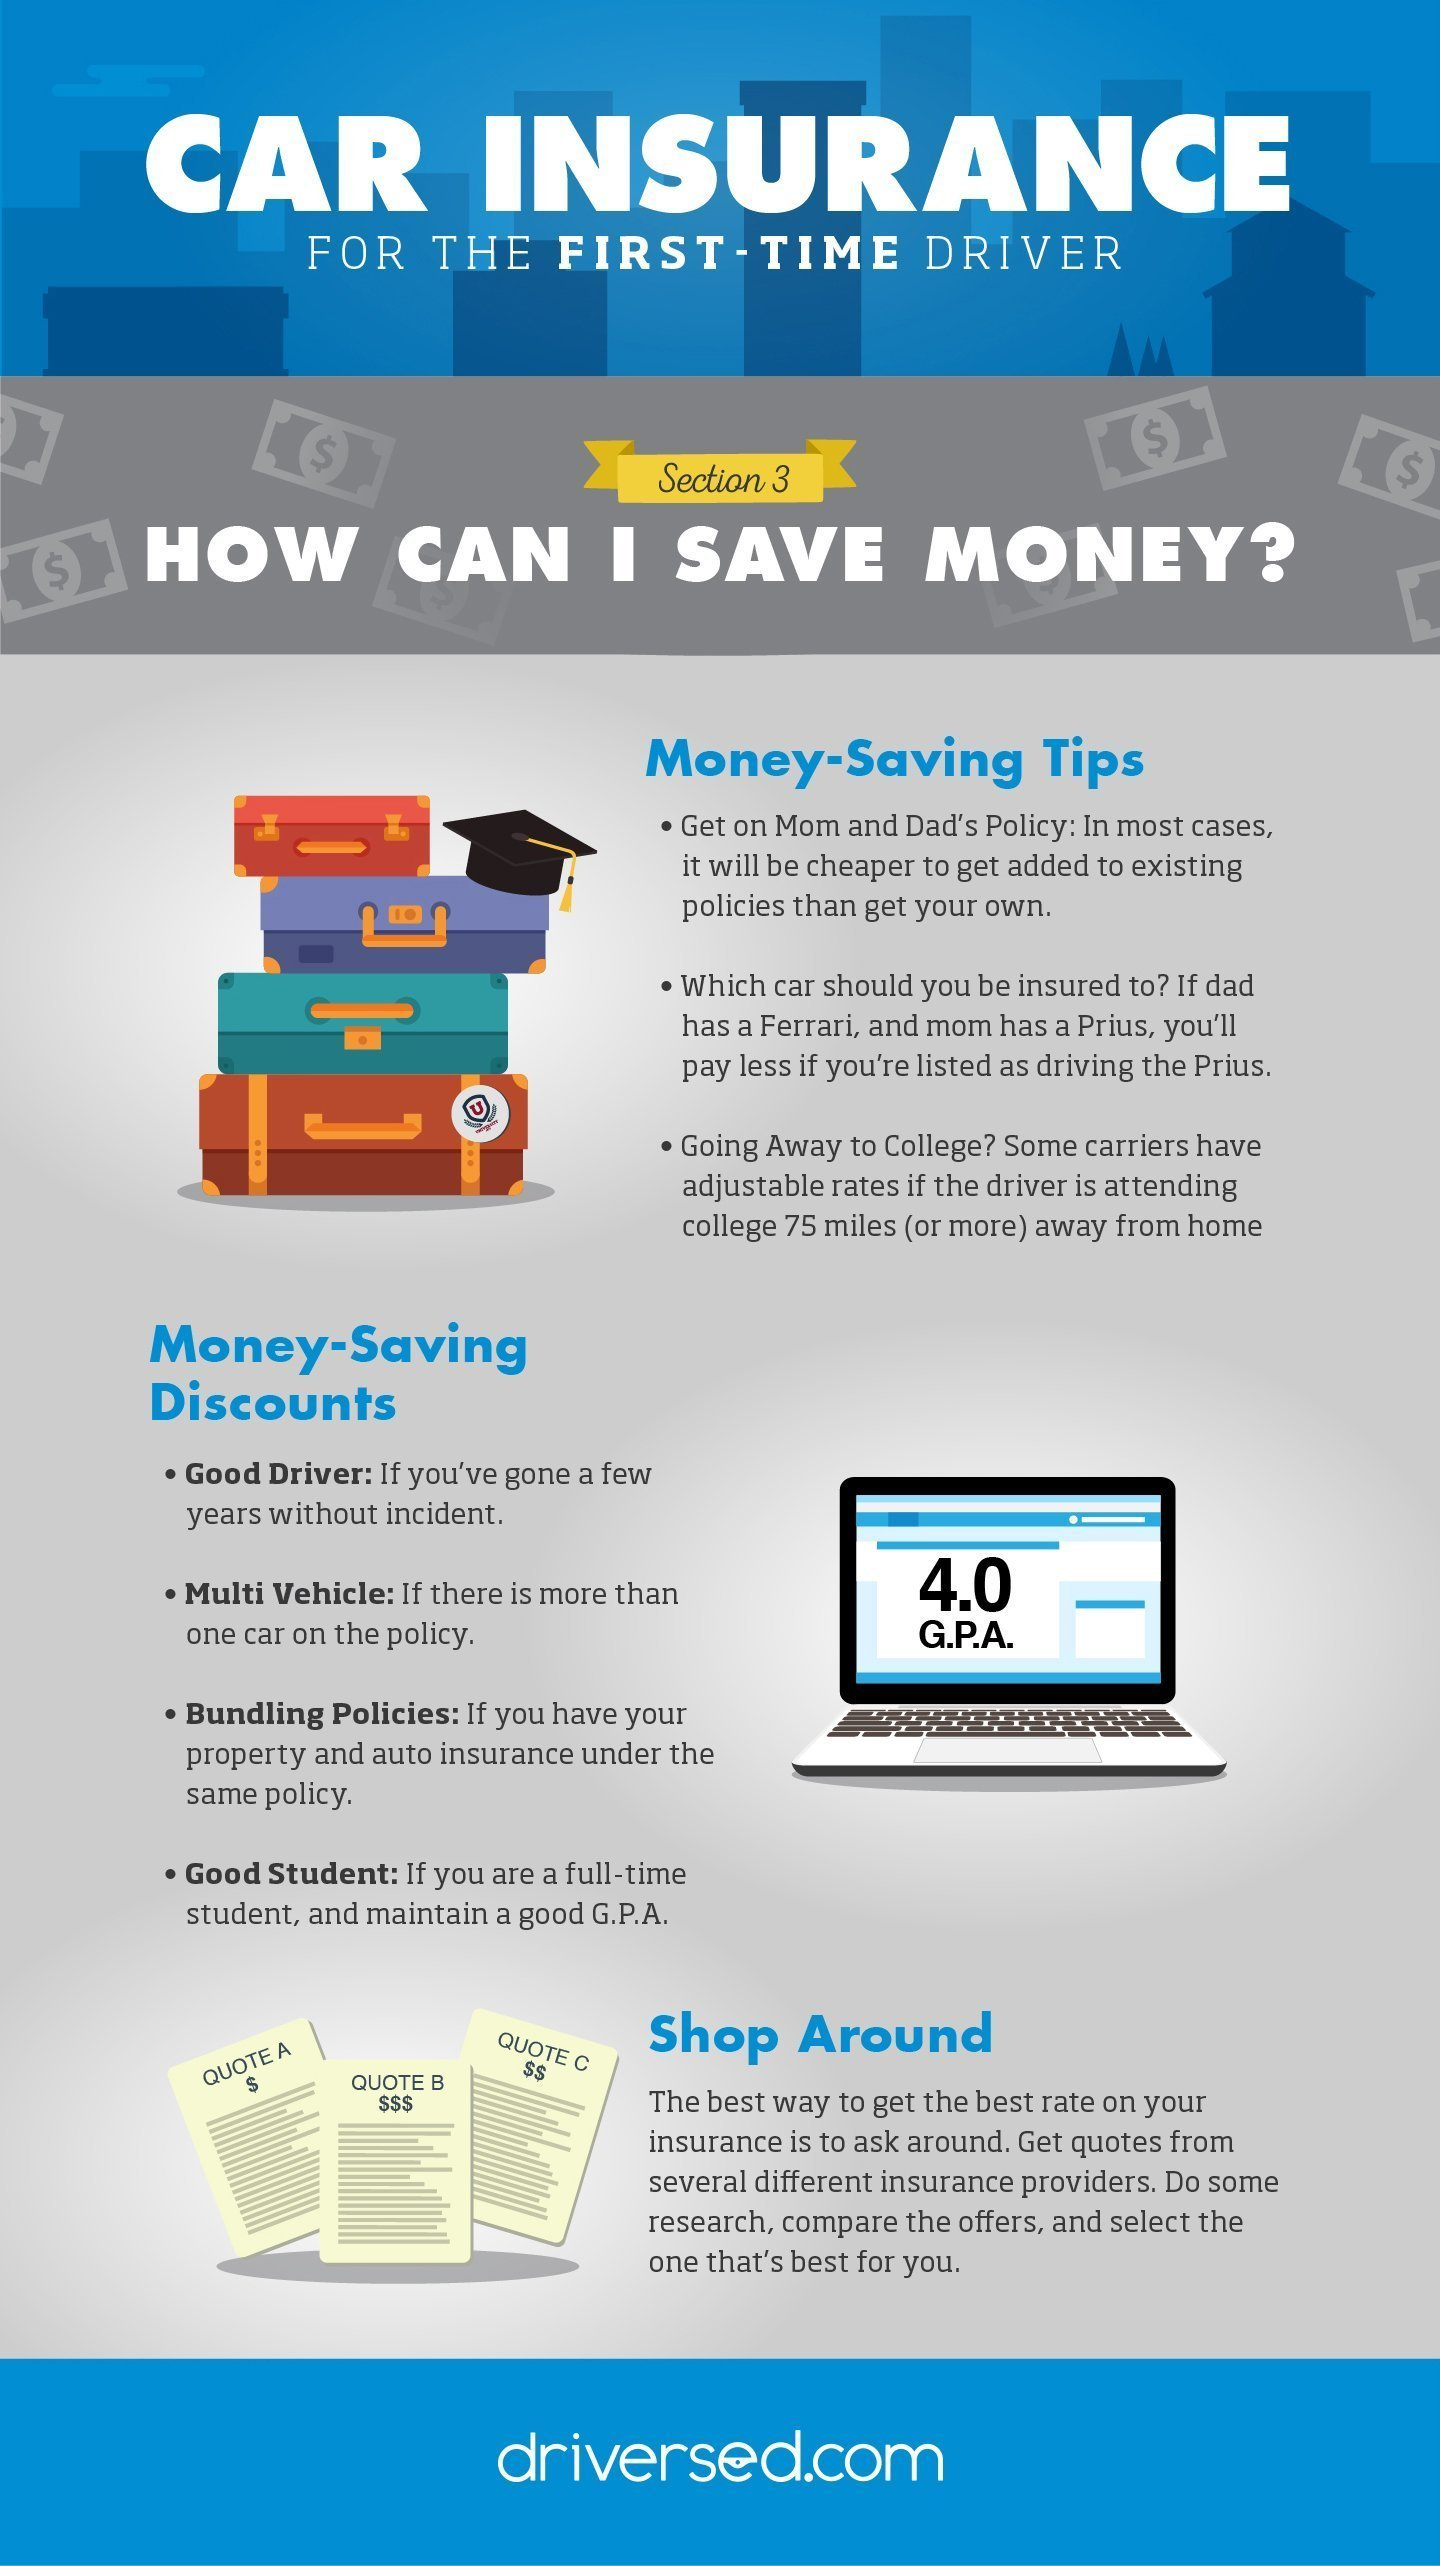 Car Insurance 101 Infographic, laying out ways to save money on car insurance for first-time drivers (and others).